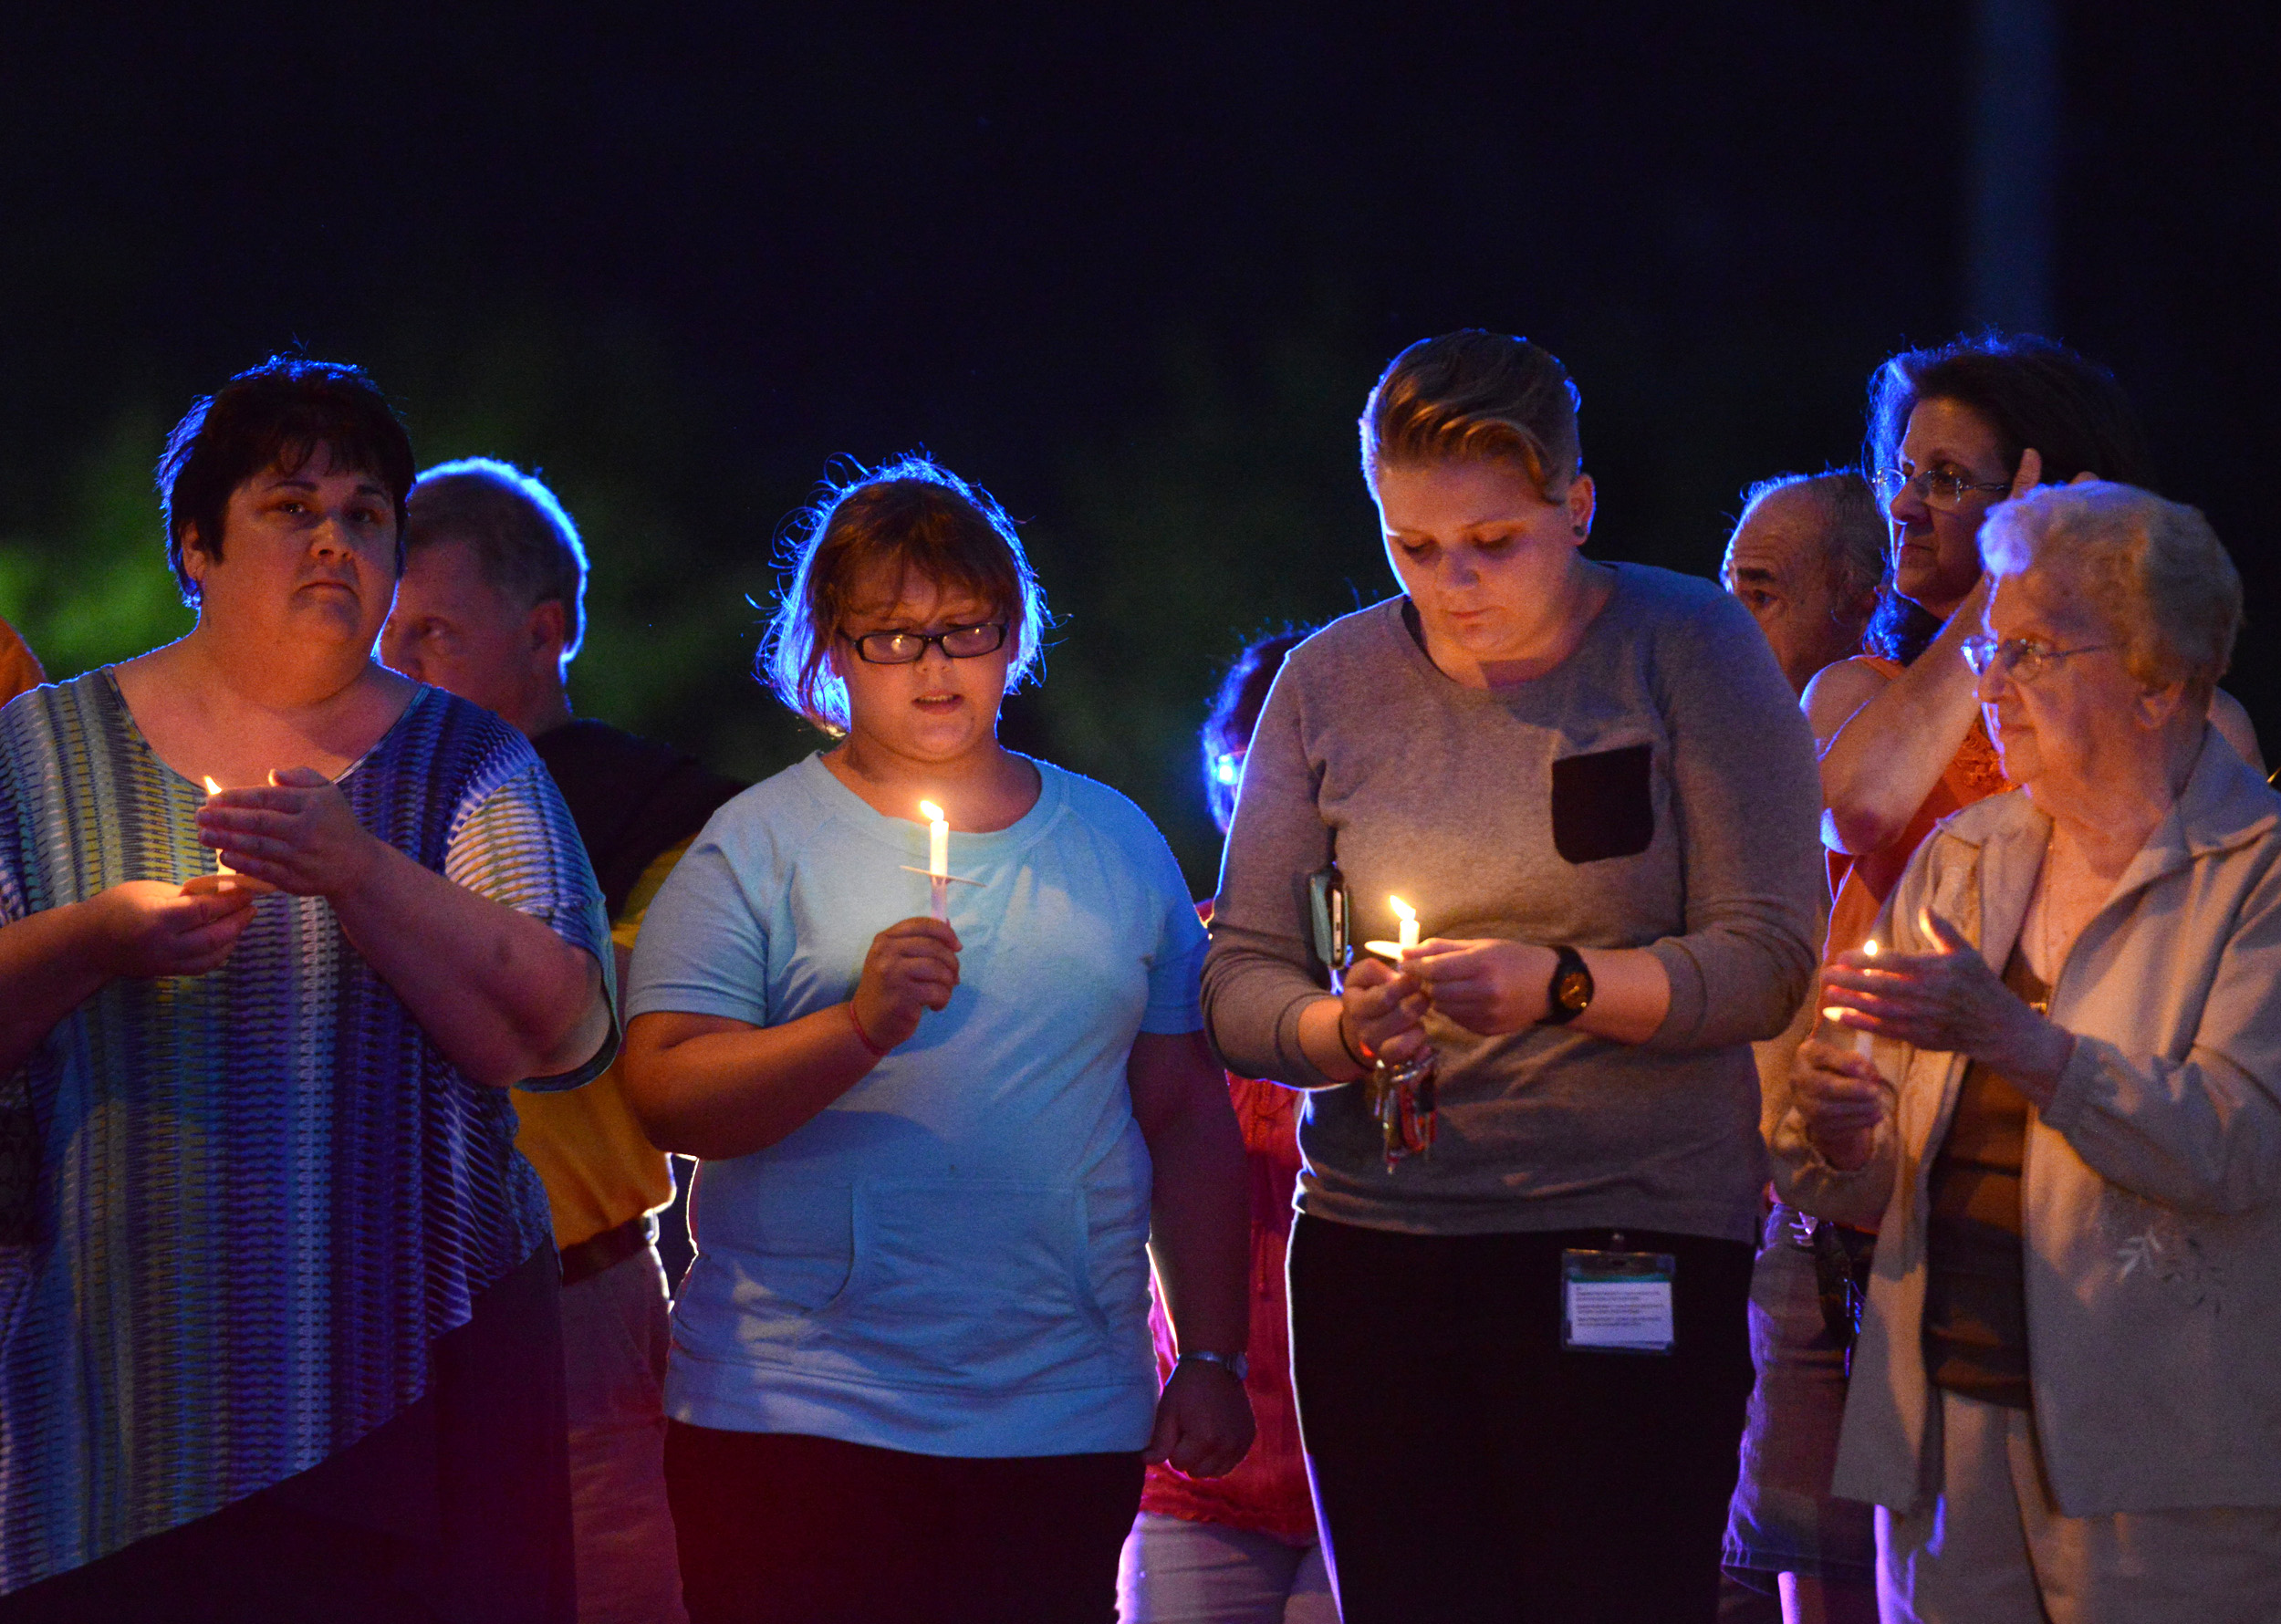 Helayna Baer, 11, of Cheswick, gazes towards her candle with her mother, Denise Baer, and former babysitter Jodi Holmes, 23, of Springdale, who was there with Jodi's grandmother Josephine Funkhouser, of Springdale, while standing along Pittsburgh Street in Springdale during a candlelight vigil hosted by Springdale Helping Our Peers Everyday on Monday, Aug. 24, 2015.